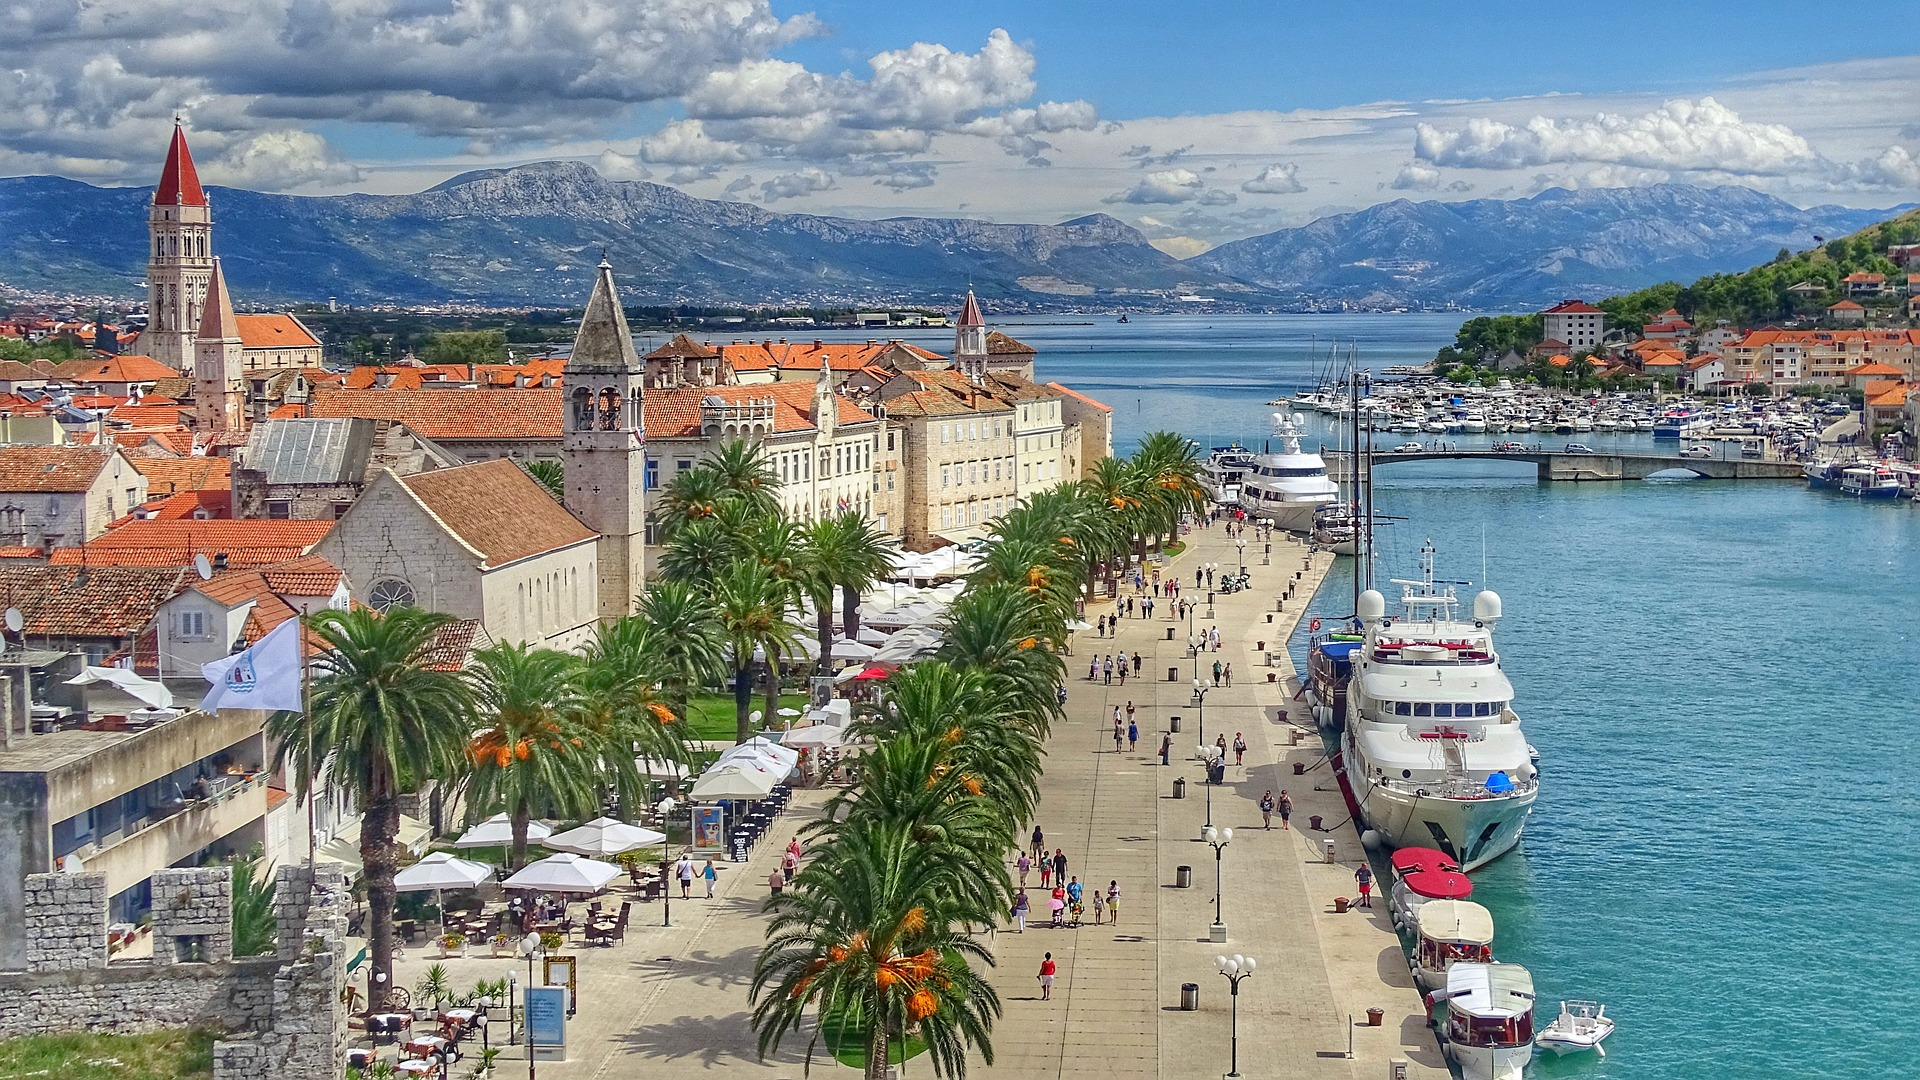 Get stoked, this is Croatia.